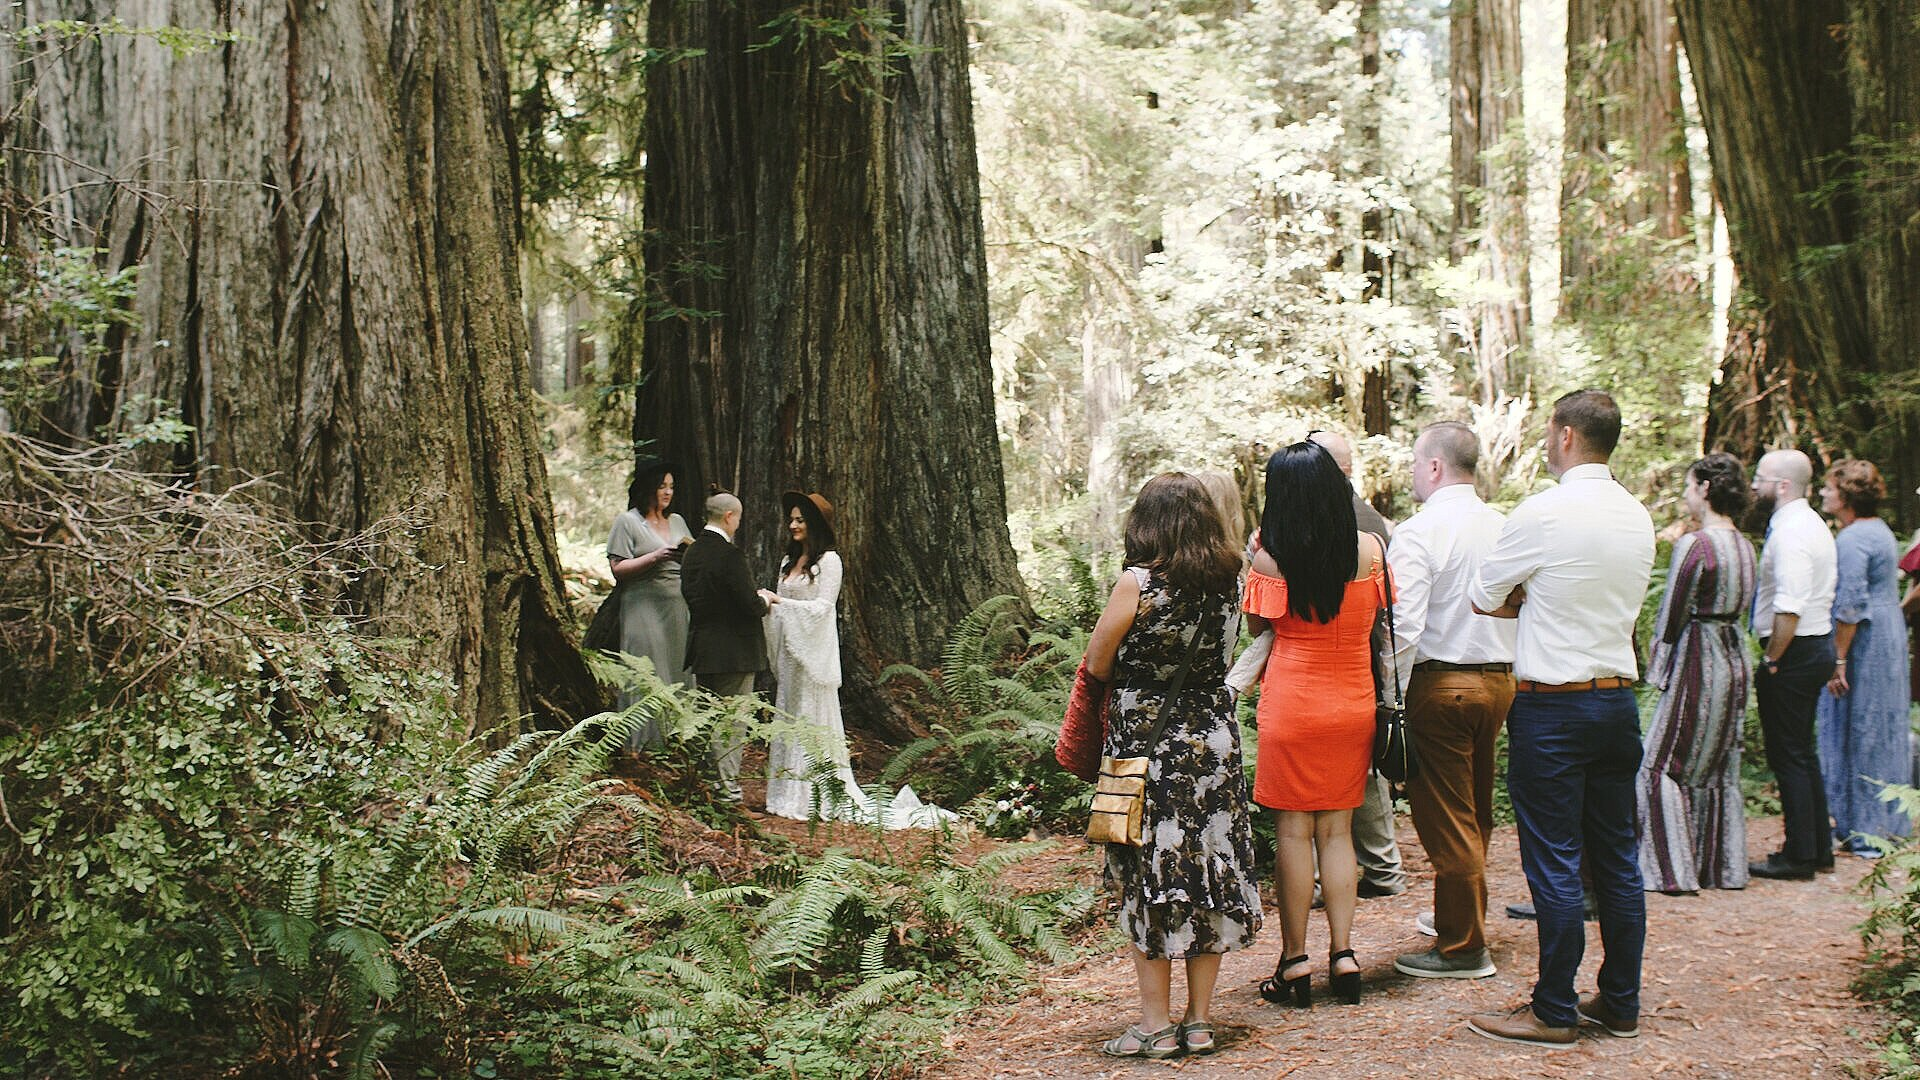 A couple is having their wedding ceremony in the redwoods and is surrounded by a few family and friends who are watching.